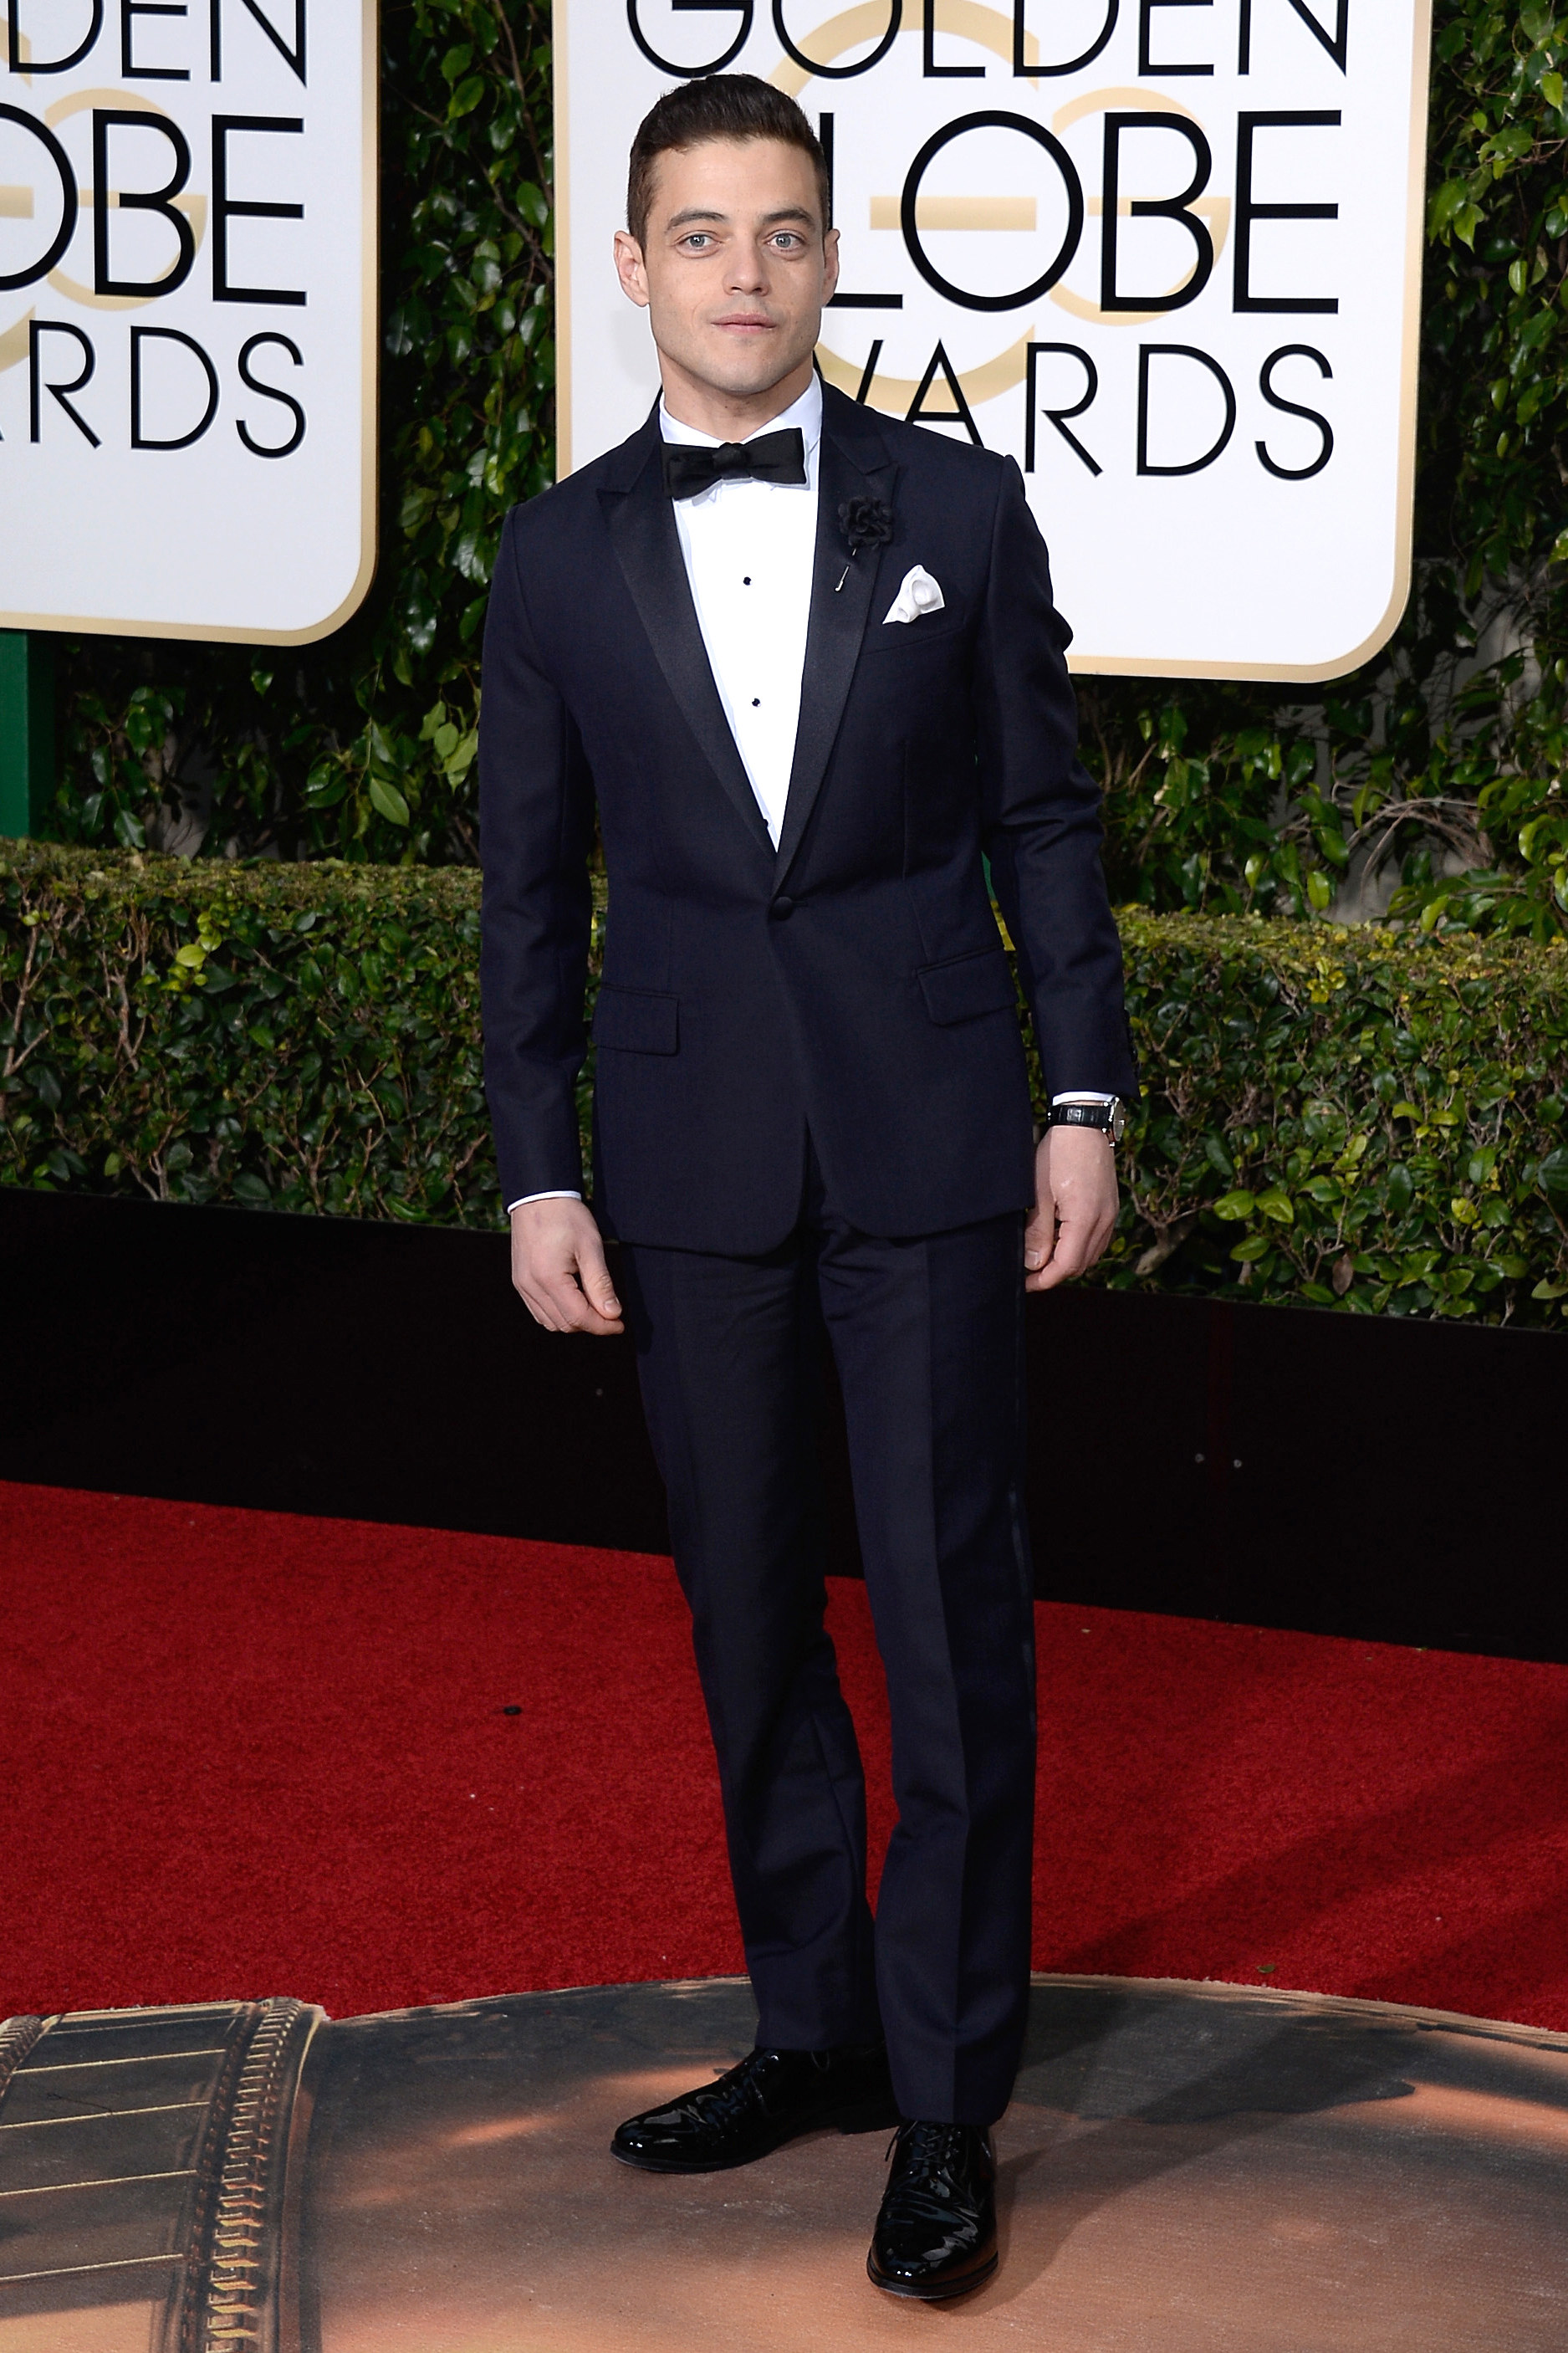 The 11 Best Dressed Men At The Golden Globes Huffpost